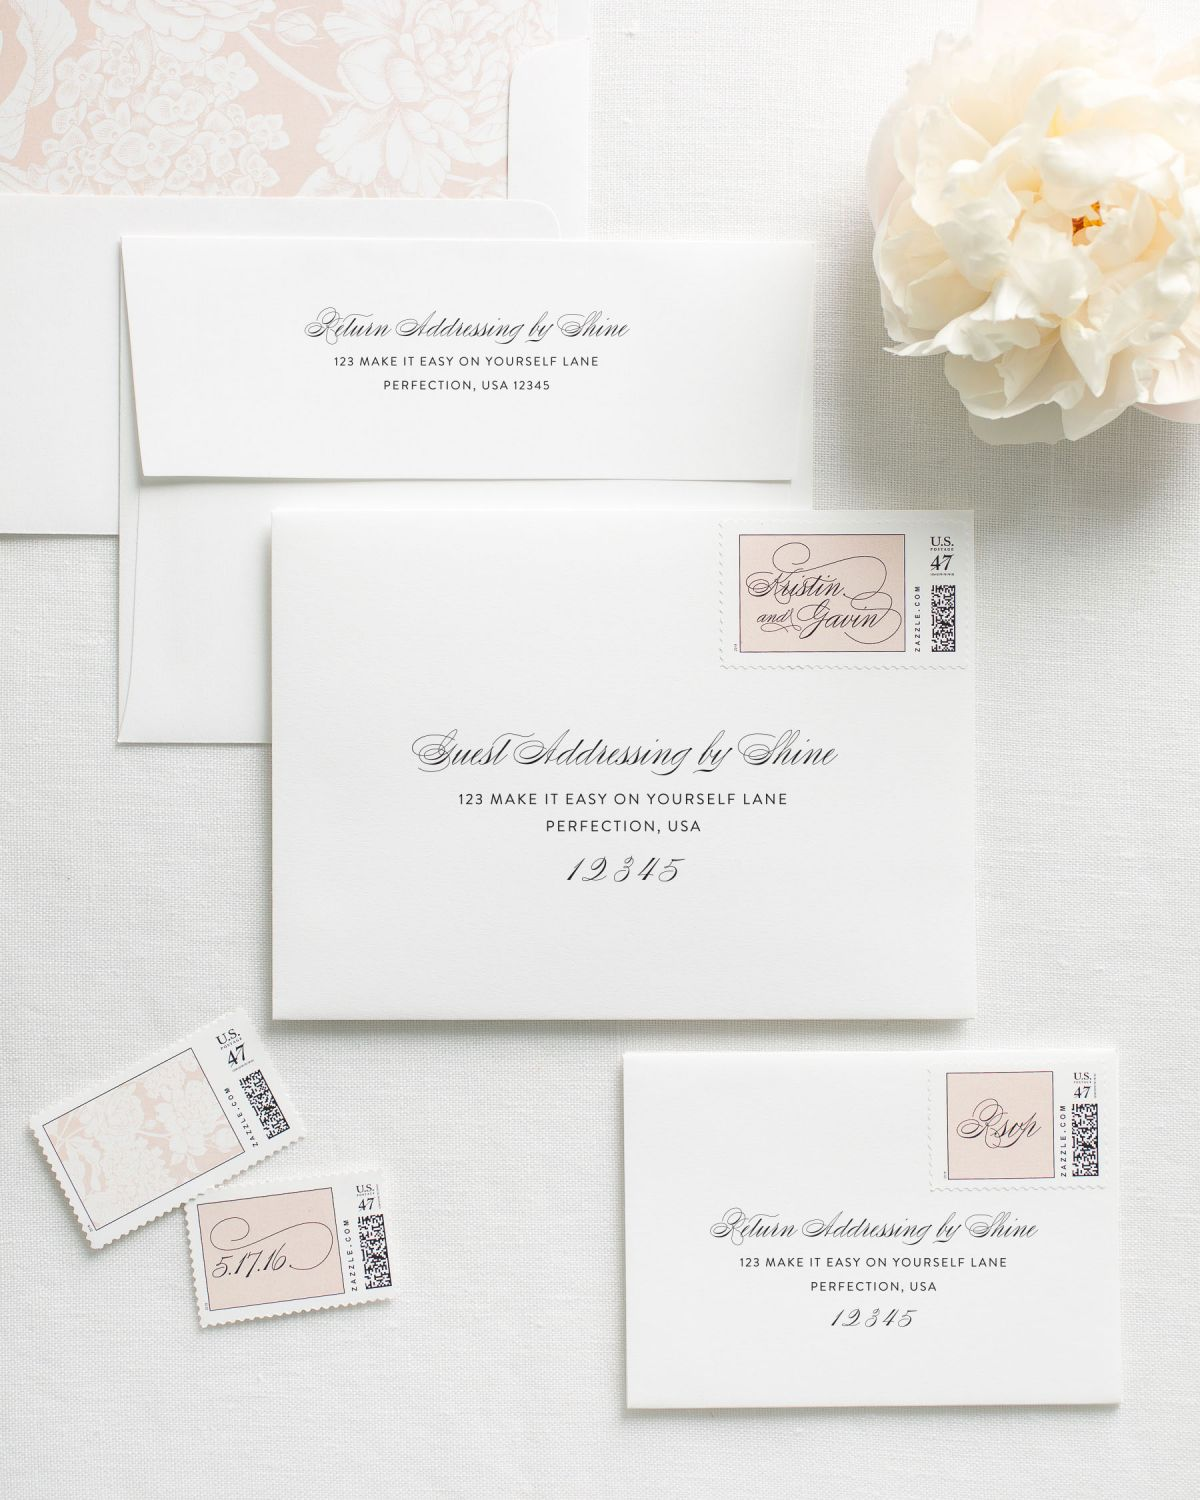 Printed Envelopes for Wedding Invitations